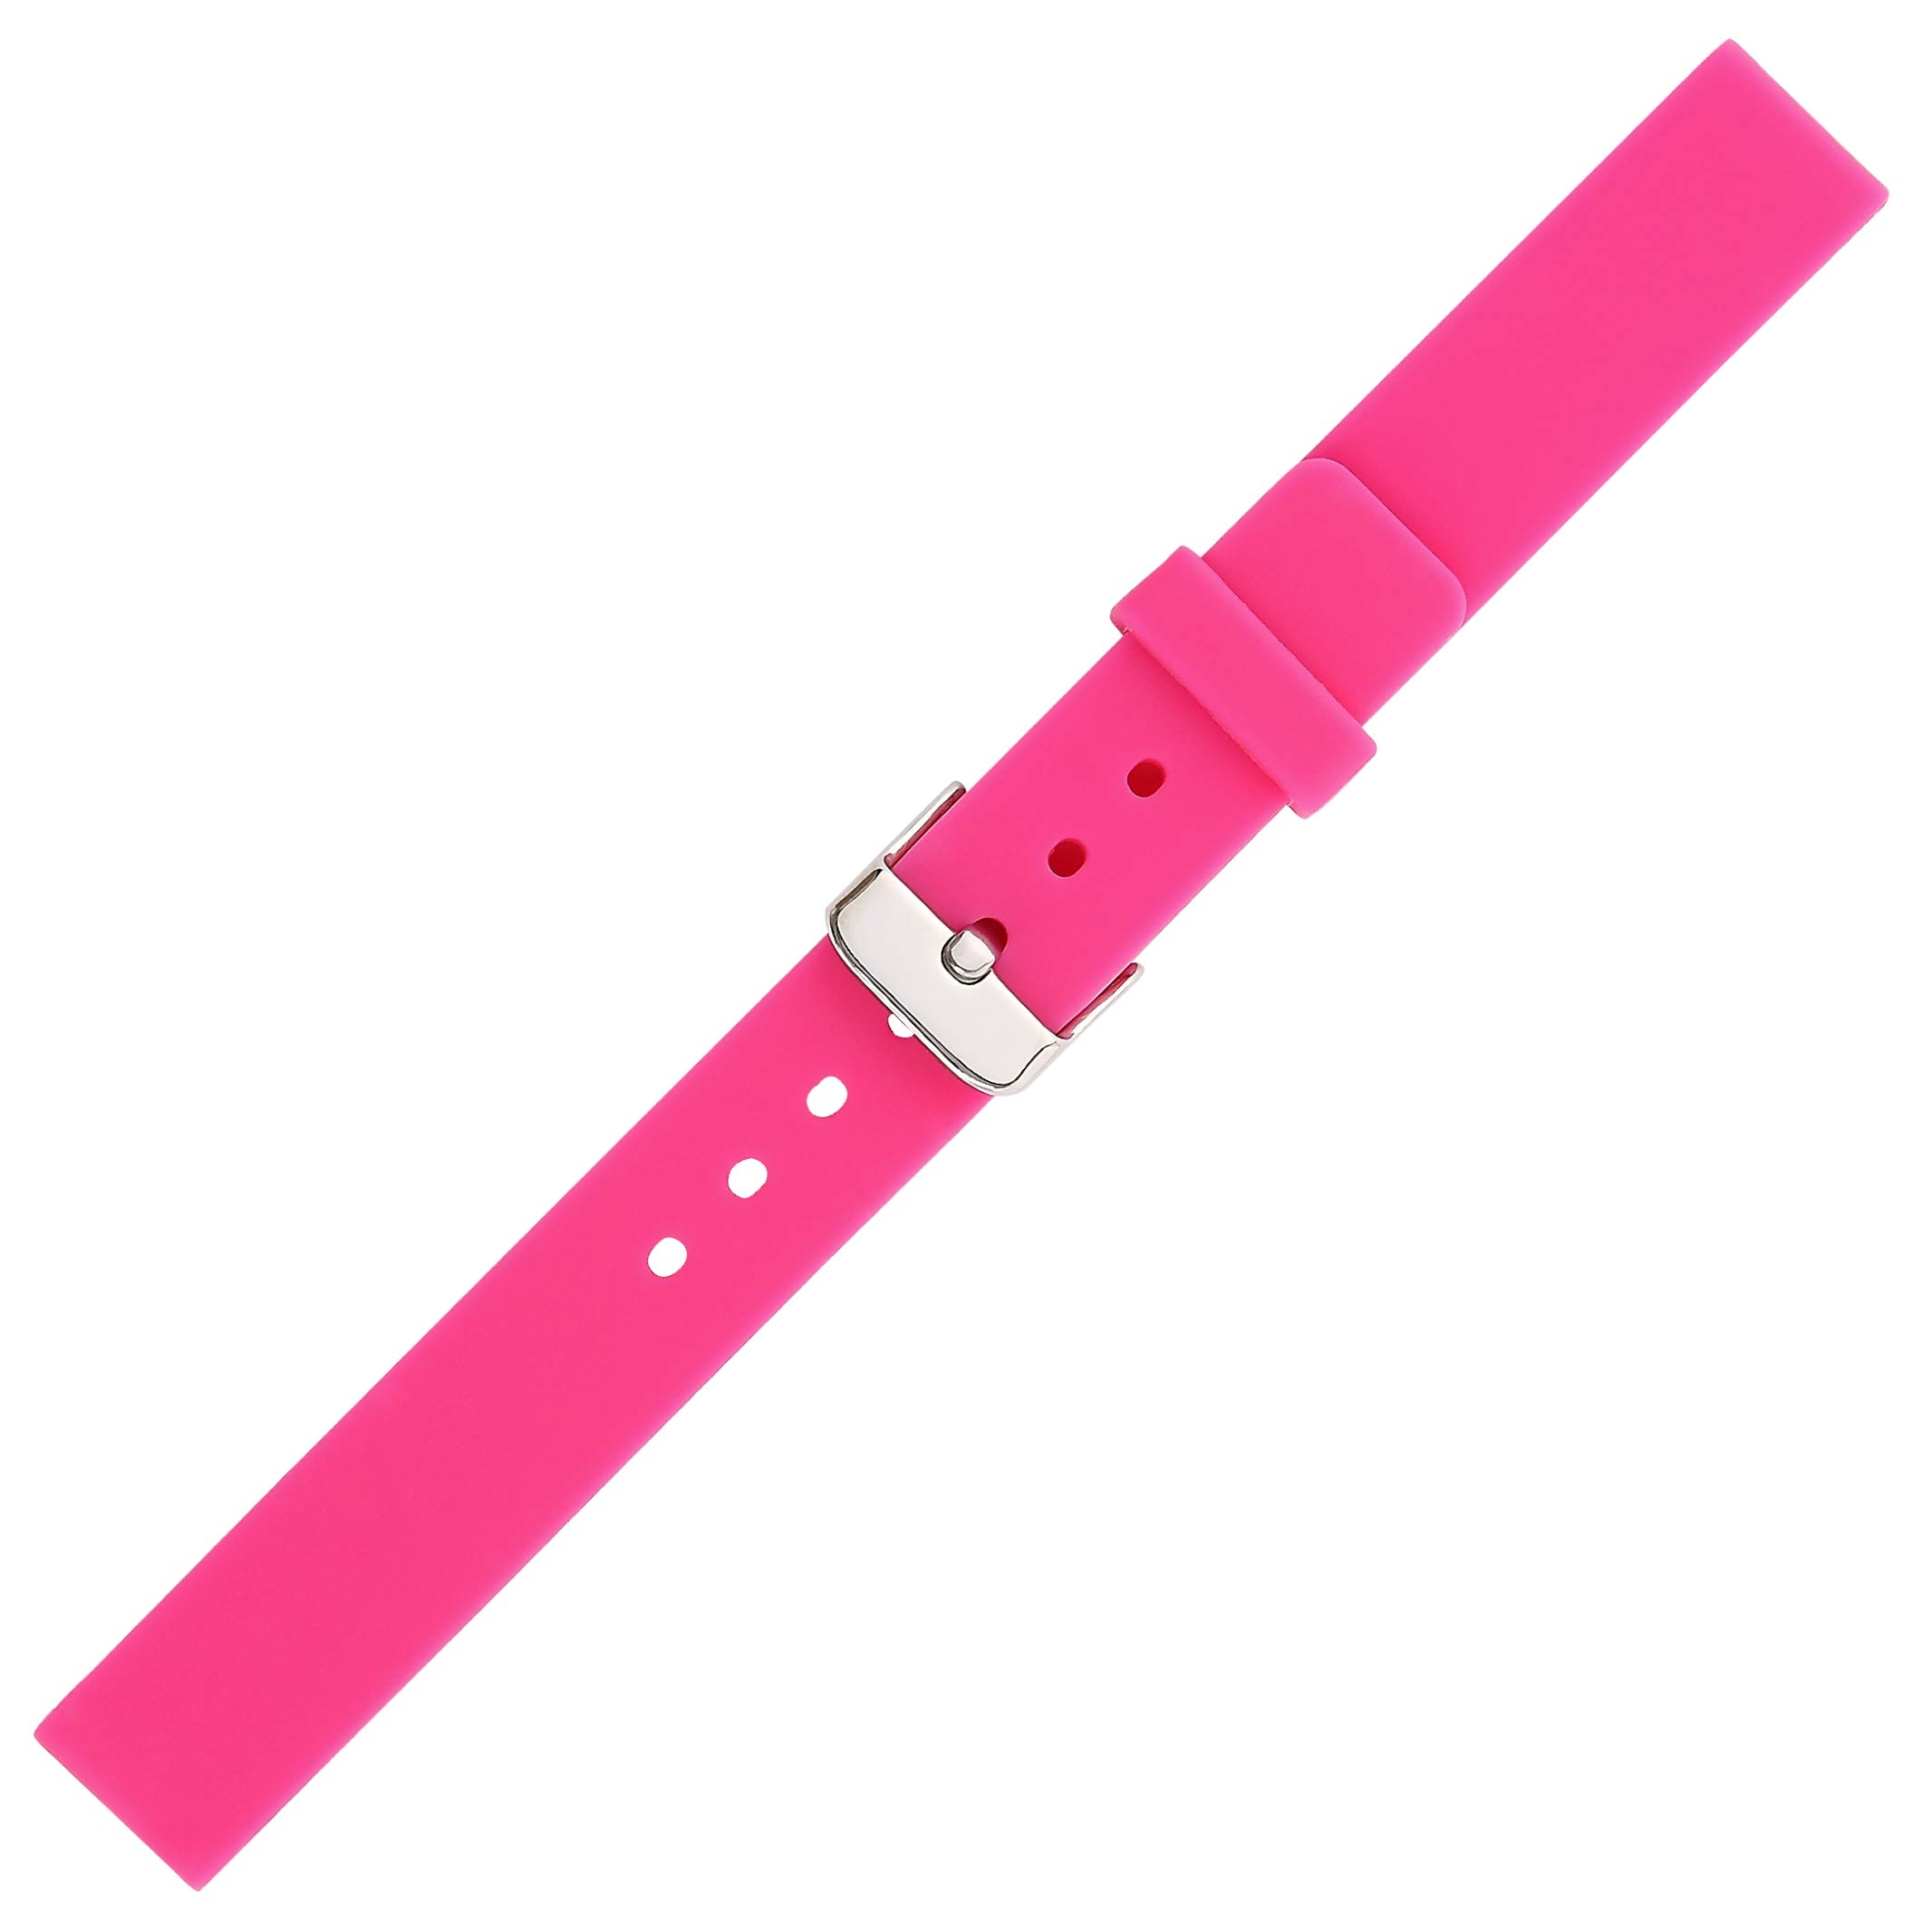 Kiiso Girl's and Boy's Sport Silicone Watch Bands 14MM (Pink) by Kiiso